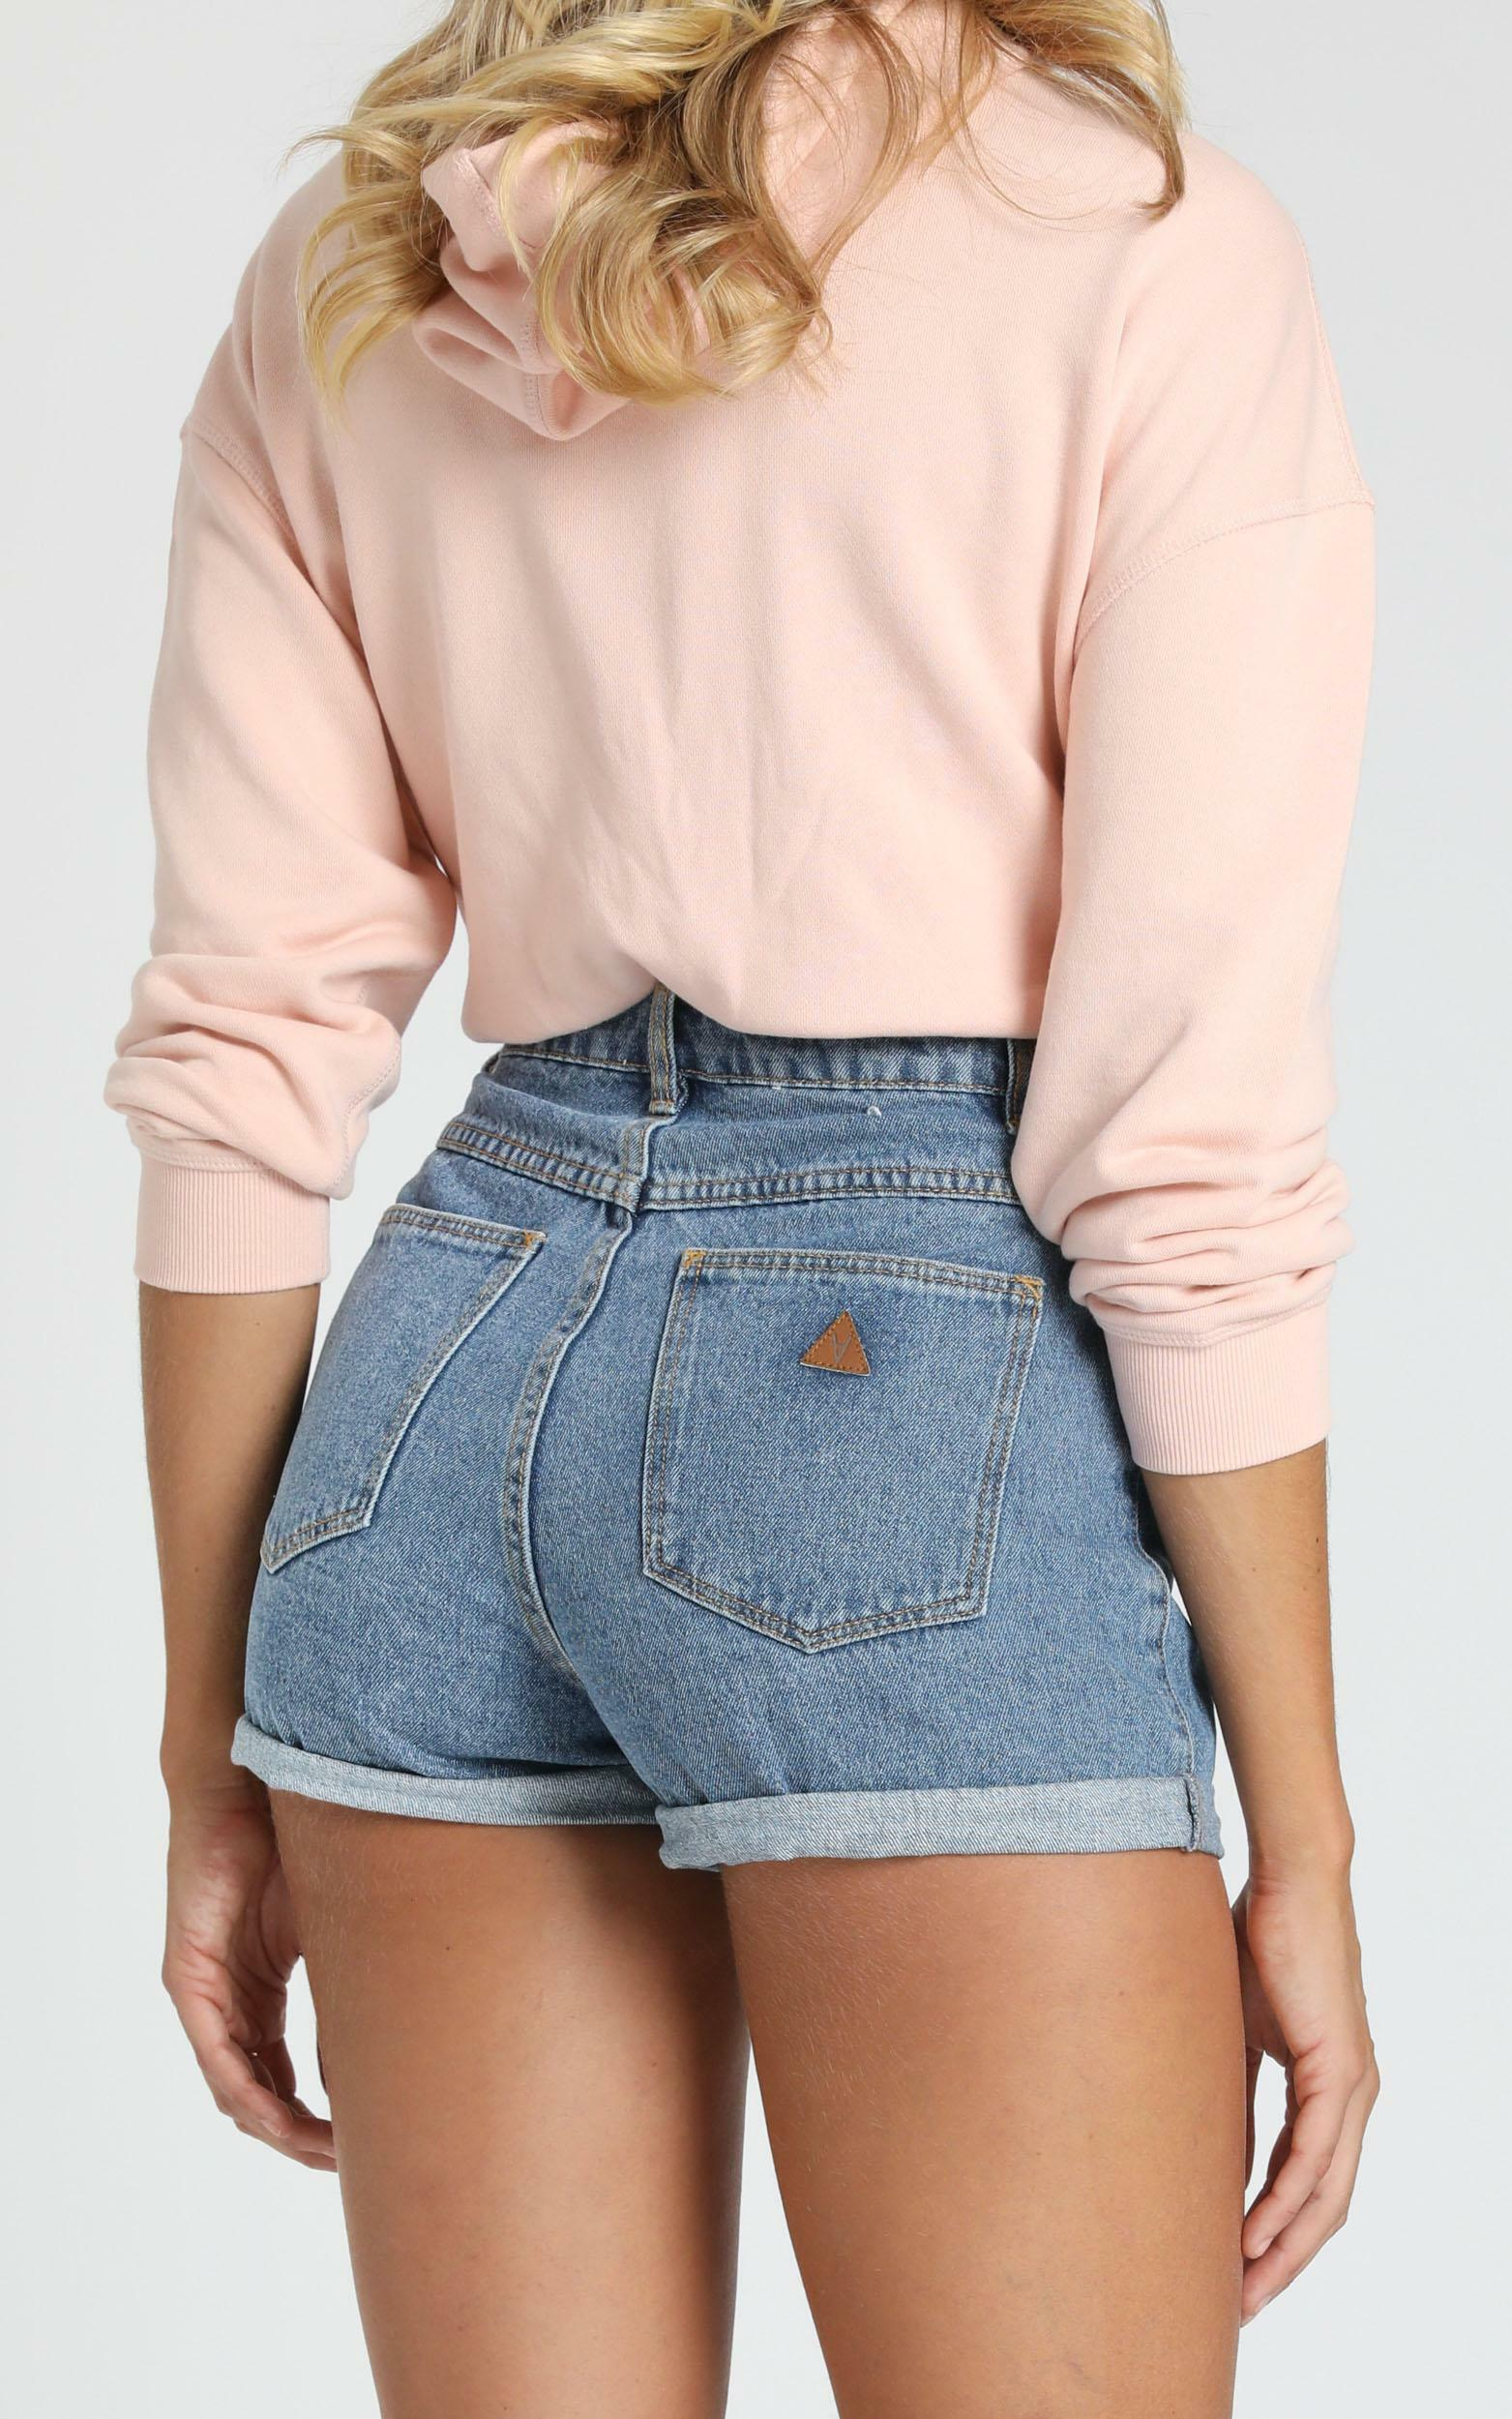 Abrand - A High Relaxed Denim Shorts in la blues - 6 (XS), BLU3, hi-res image number null